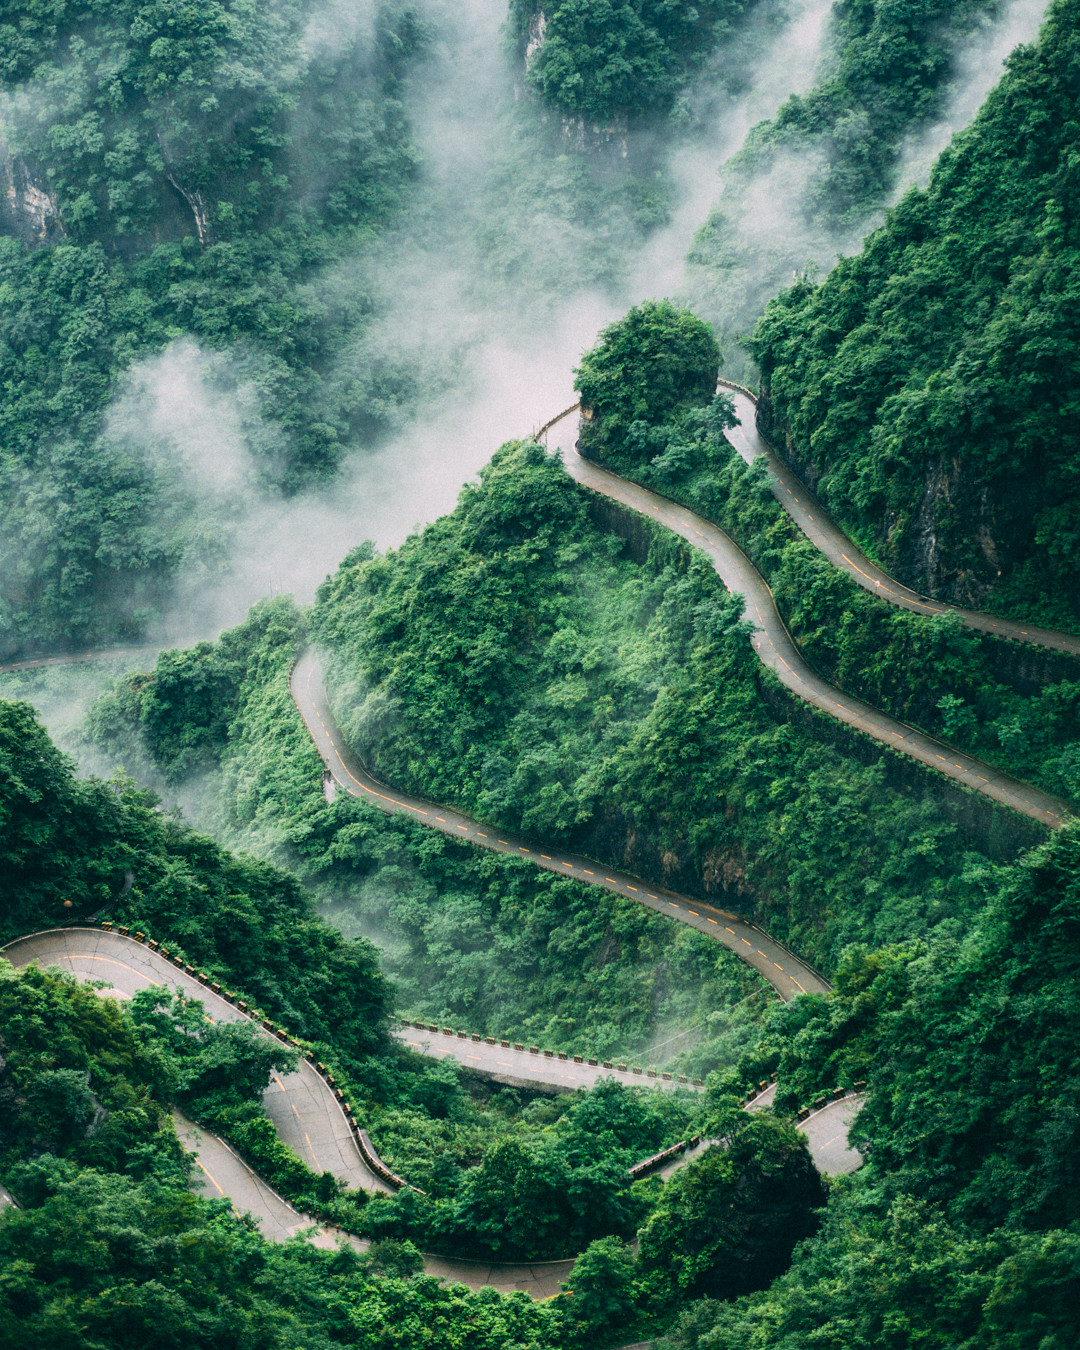 foggy mountains and a dangerous road to go up